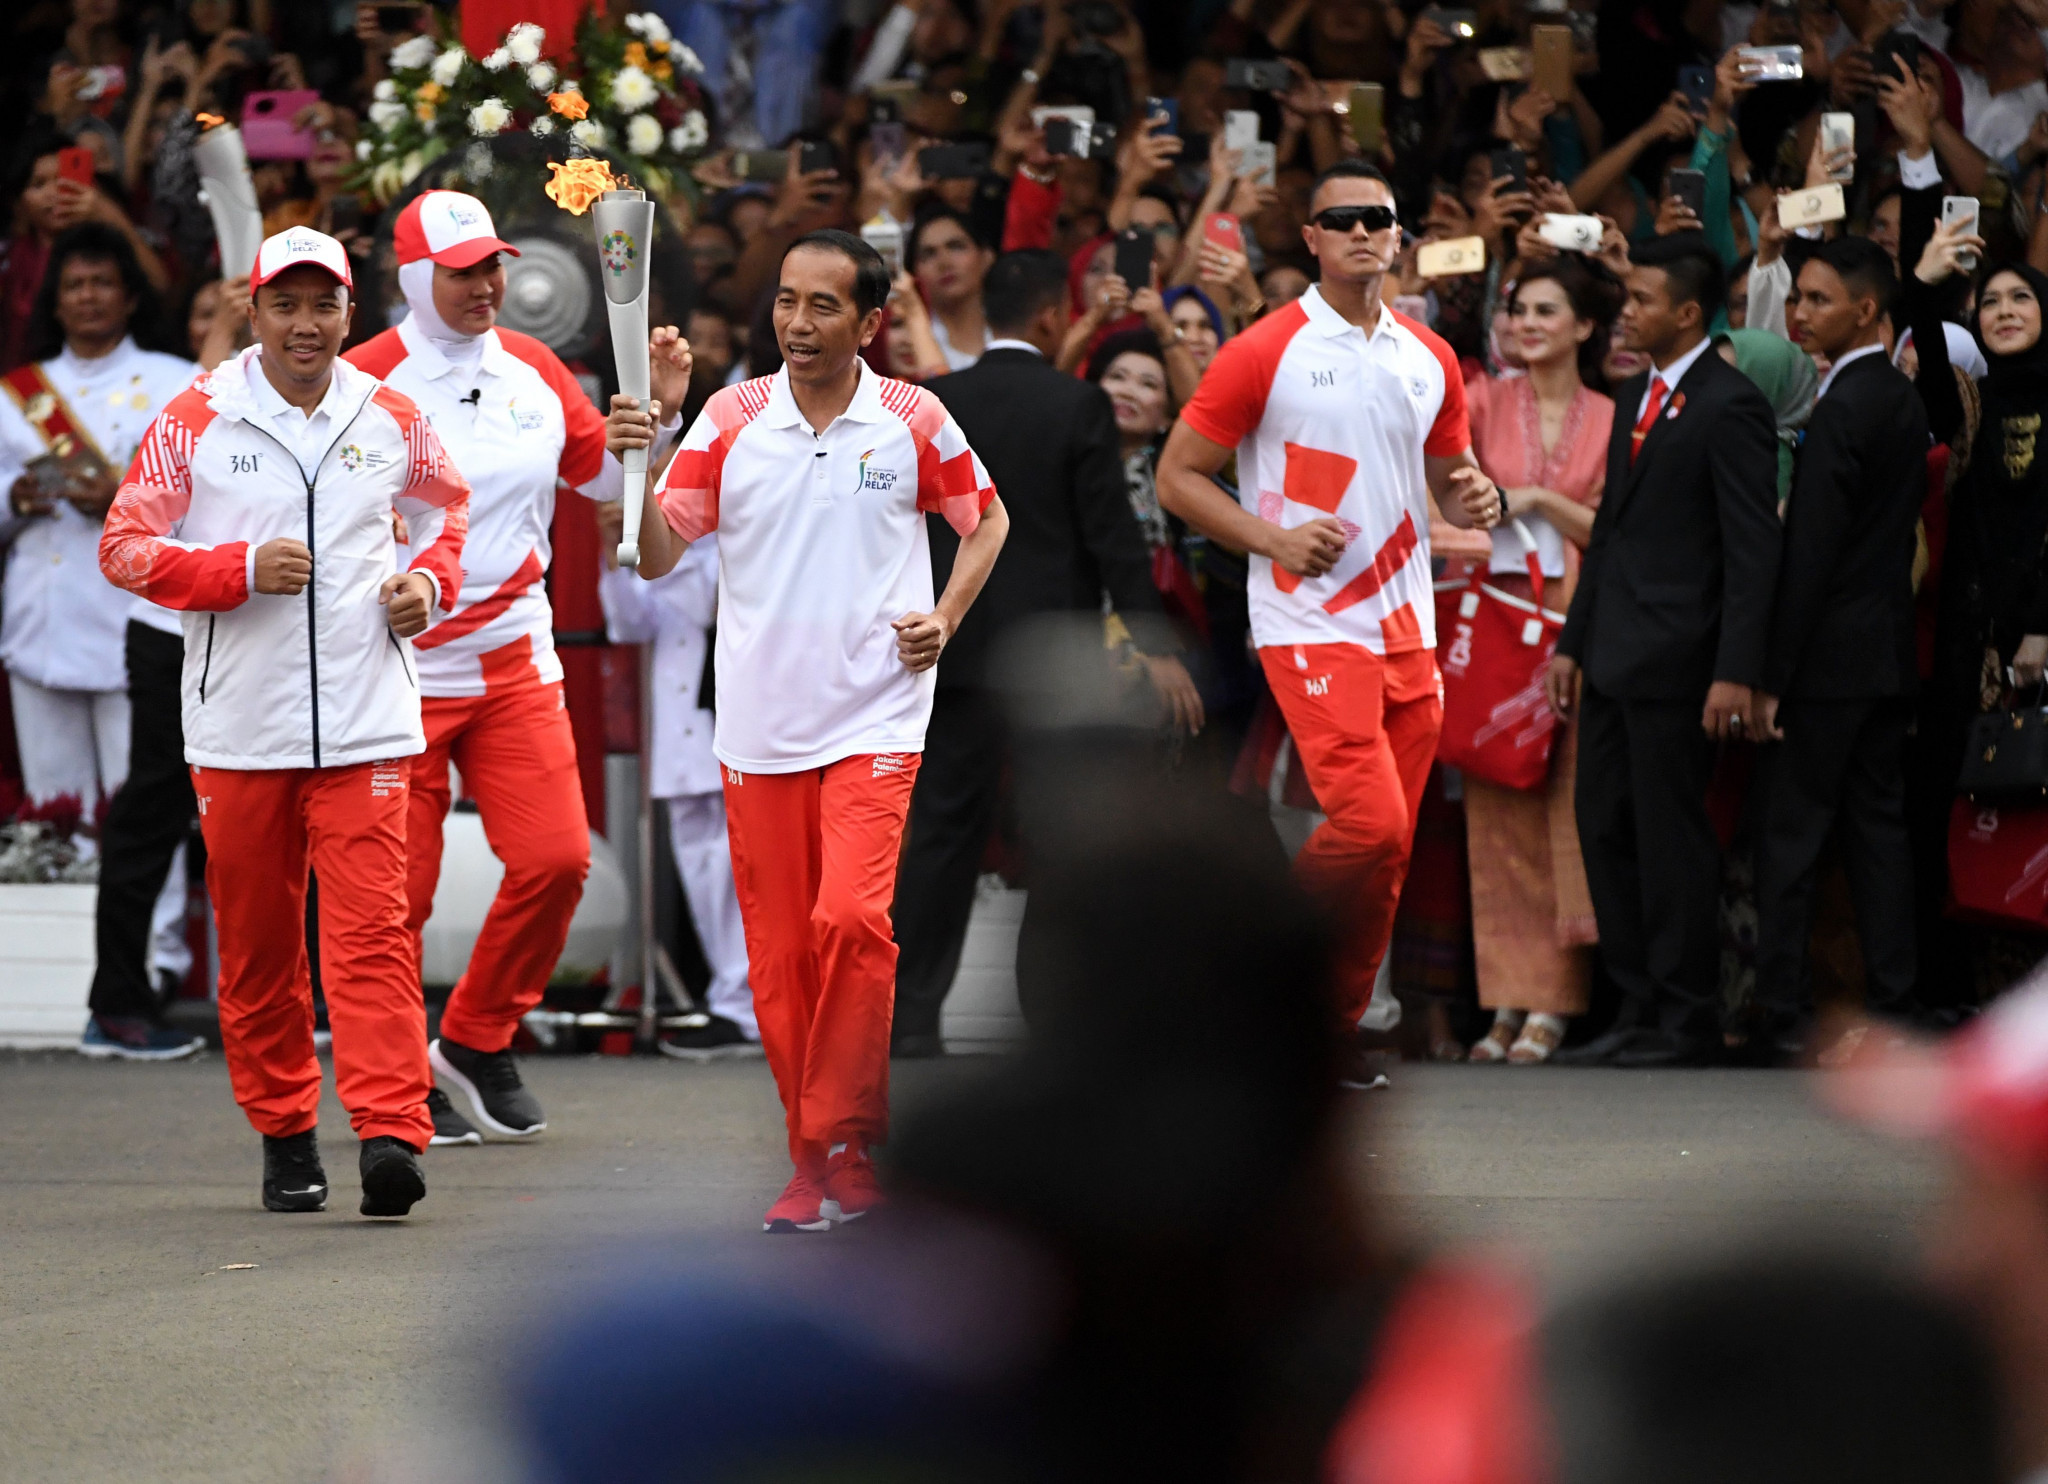 Indonesia President Joko Widodo took part in the Torch Relay for the 2018 Asian Games today as it continued its journey through co-host city Jakarta ©Getty Images